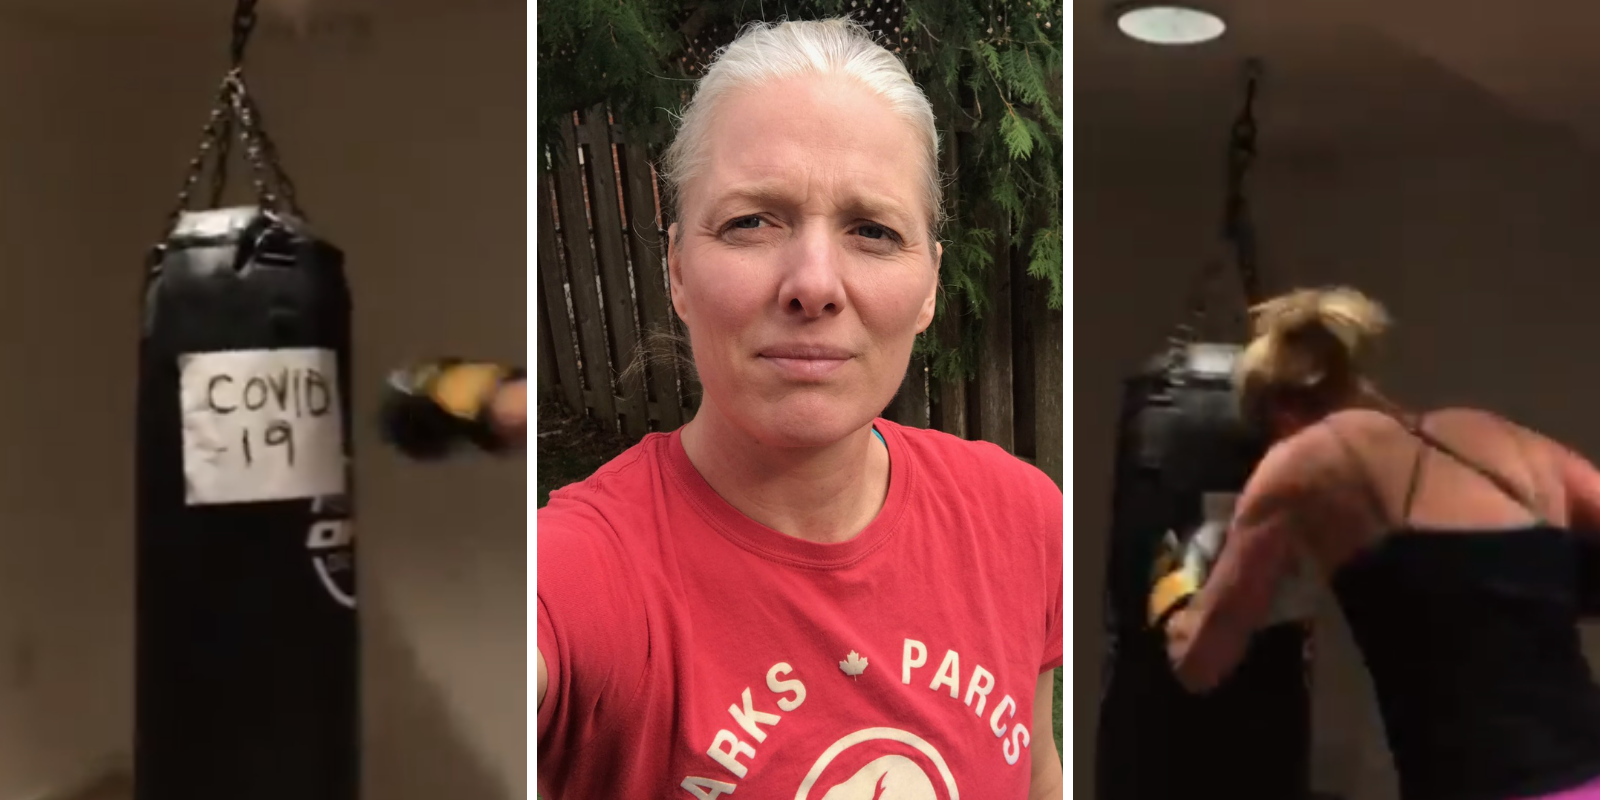 WATCH: Liberal minister posts bizarre video of her boxing with punching bag that says 'COVID-19'